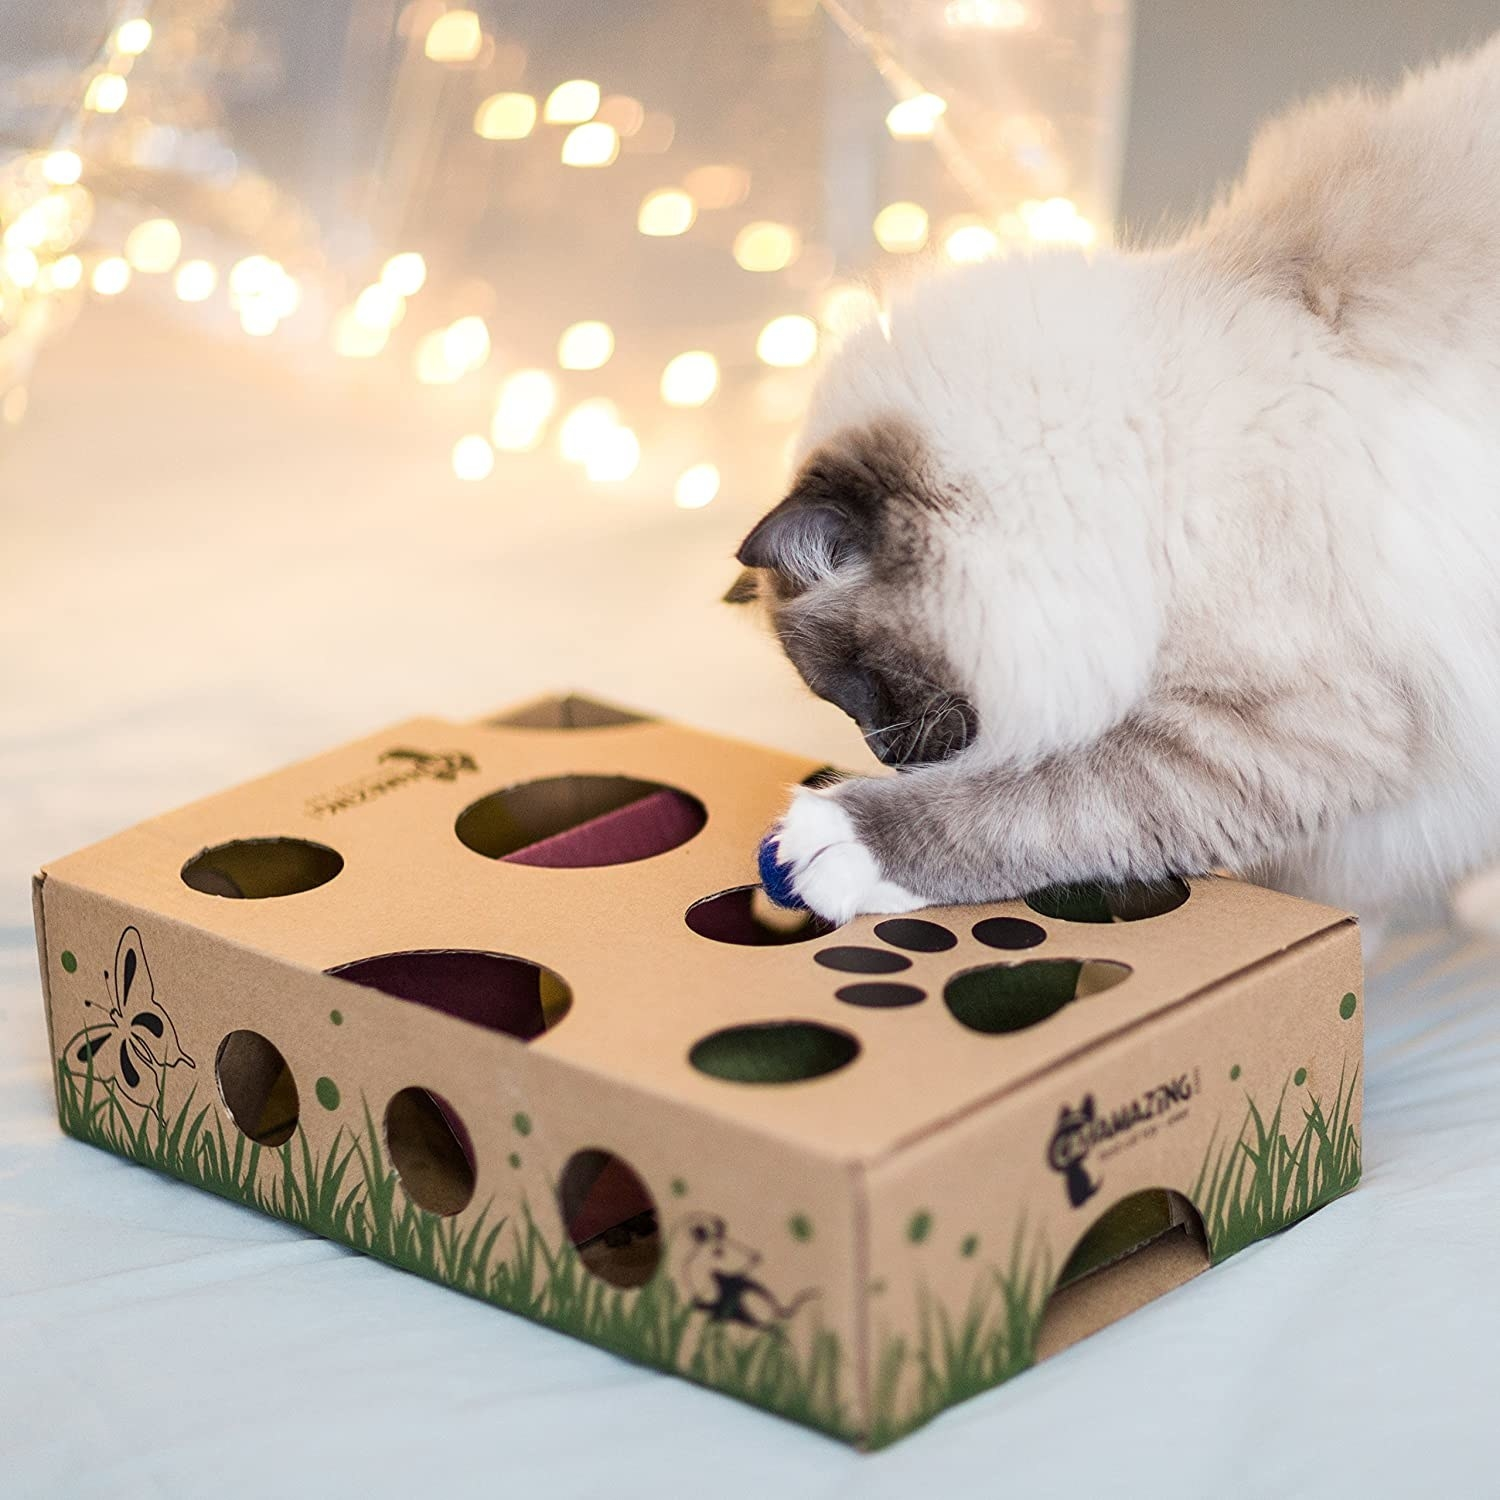 cat playing with a box with various holes cut into the surface